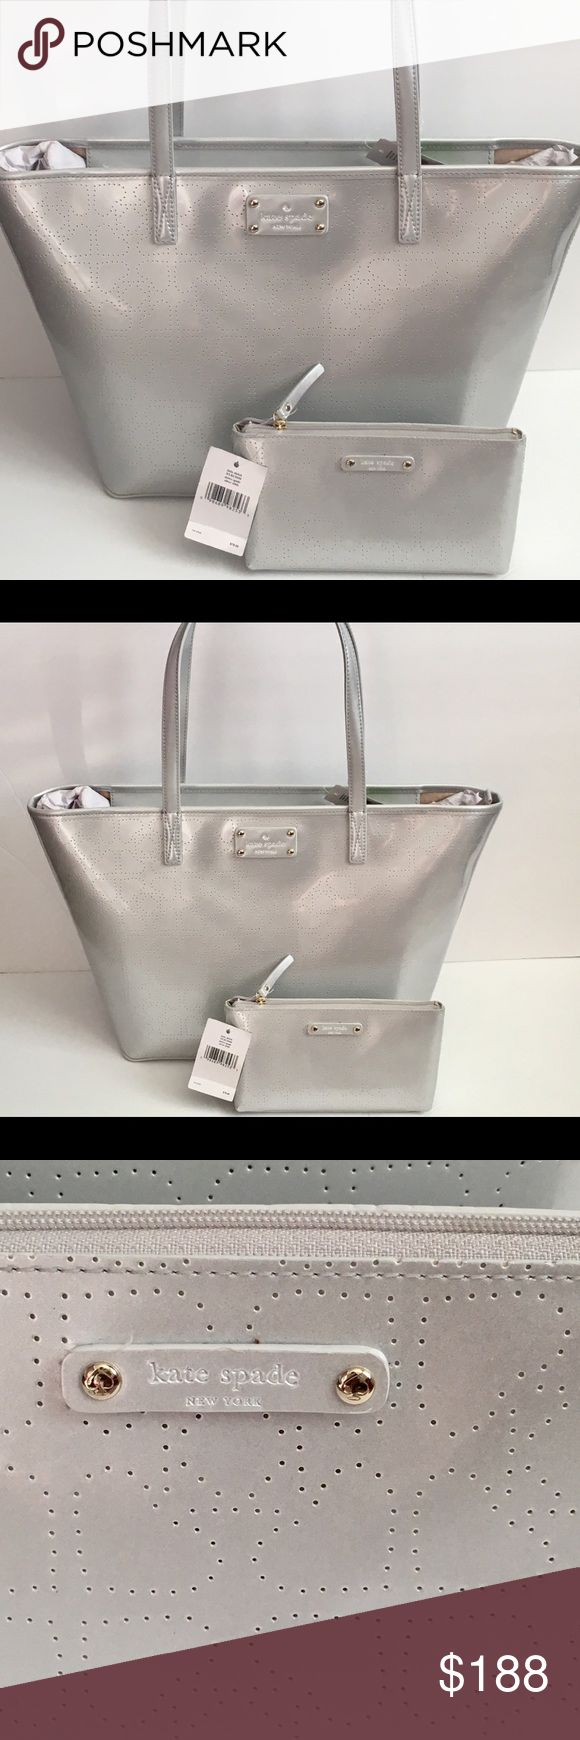 Kate Spade Tote Purse and matching Makeup Bag Kate Spade Silver Tote Bag And Matching Makeup Bag brand new with tags on both. kate spade Bags Totes